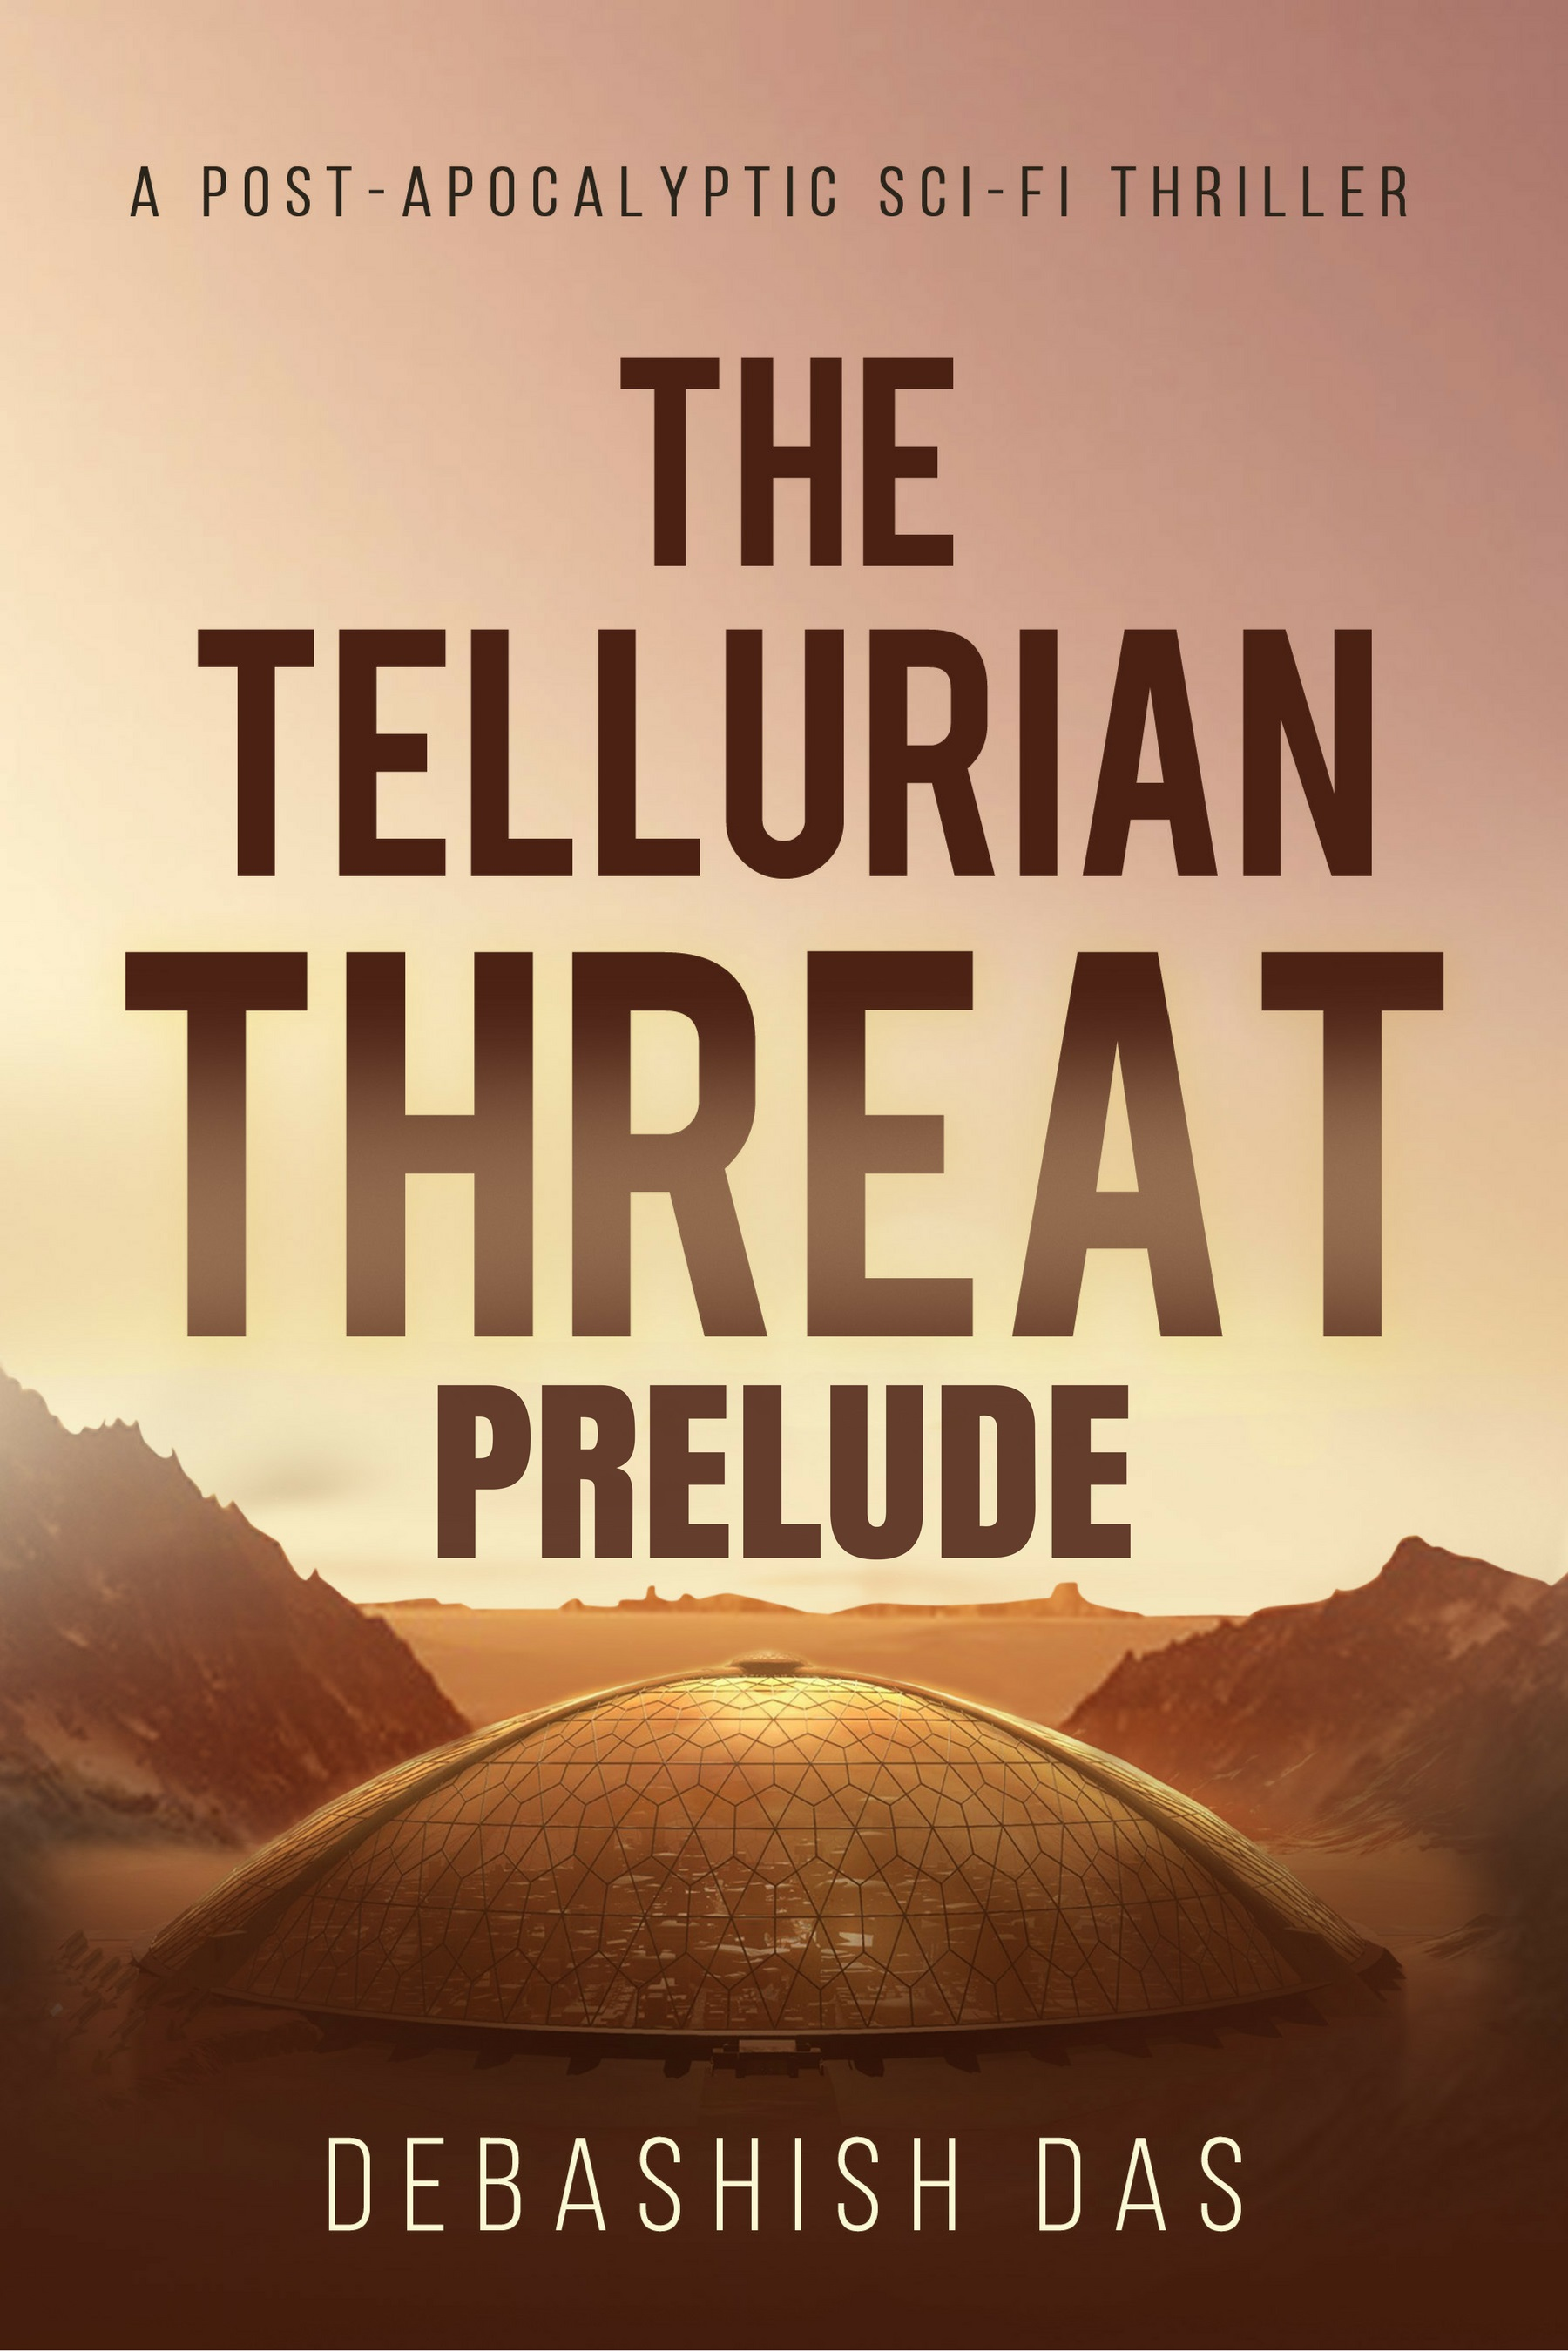 The Tellurian Threat: Prelude